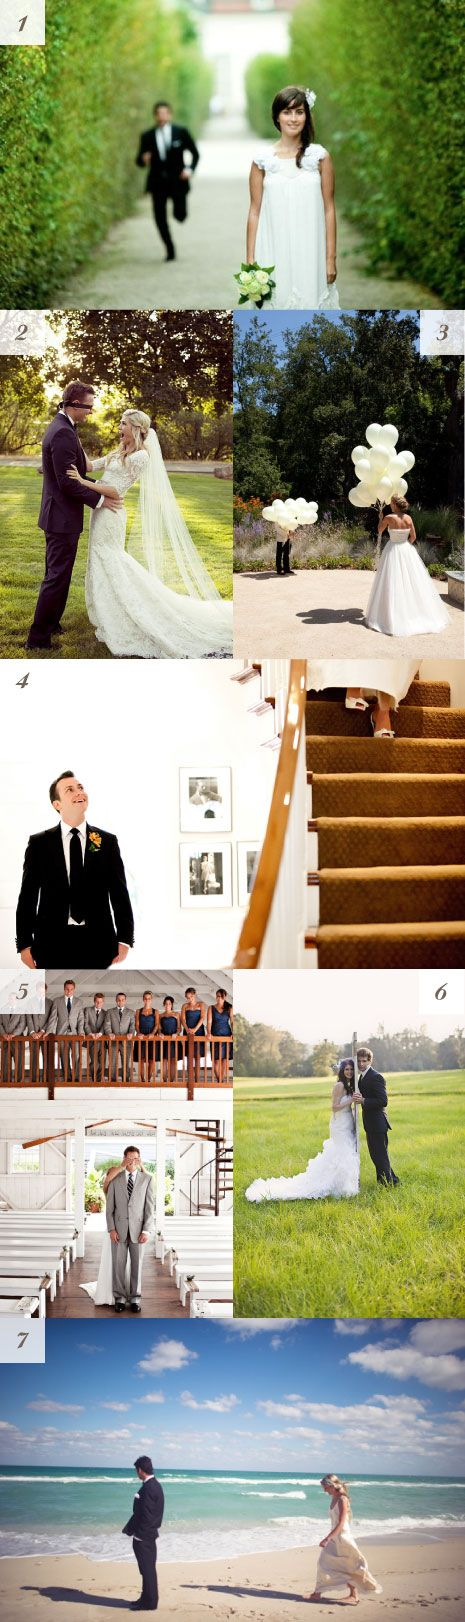 Inspirational first look wedding photos - #reveal #firstlook